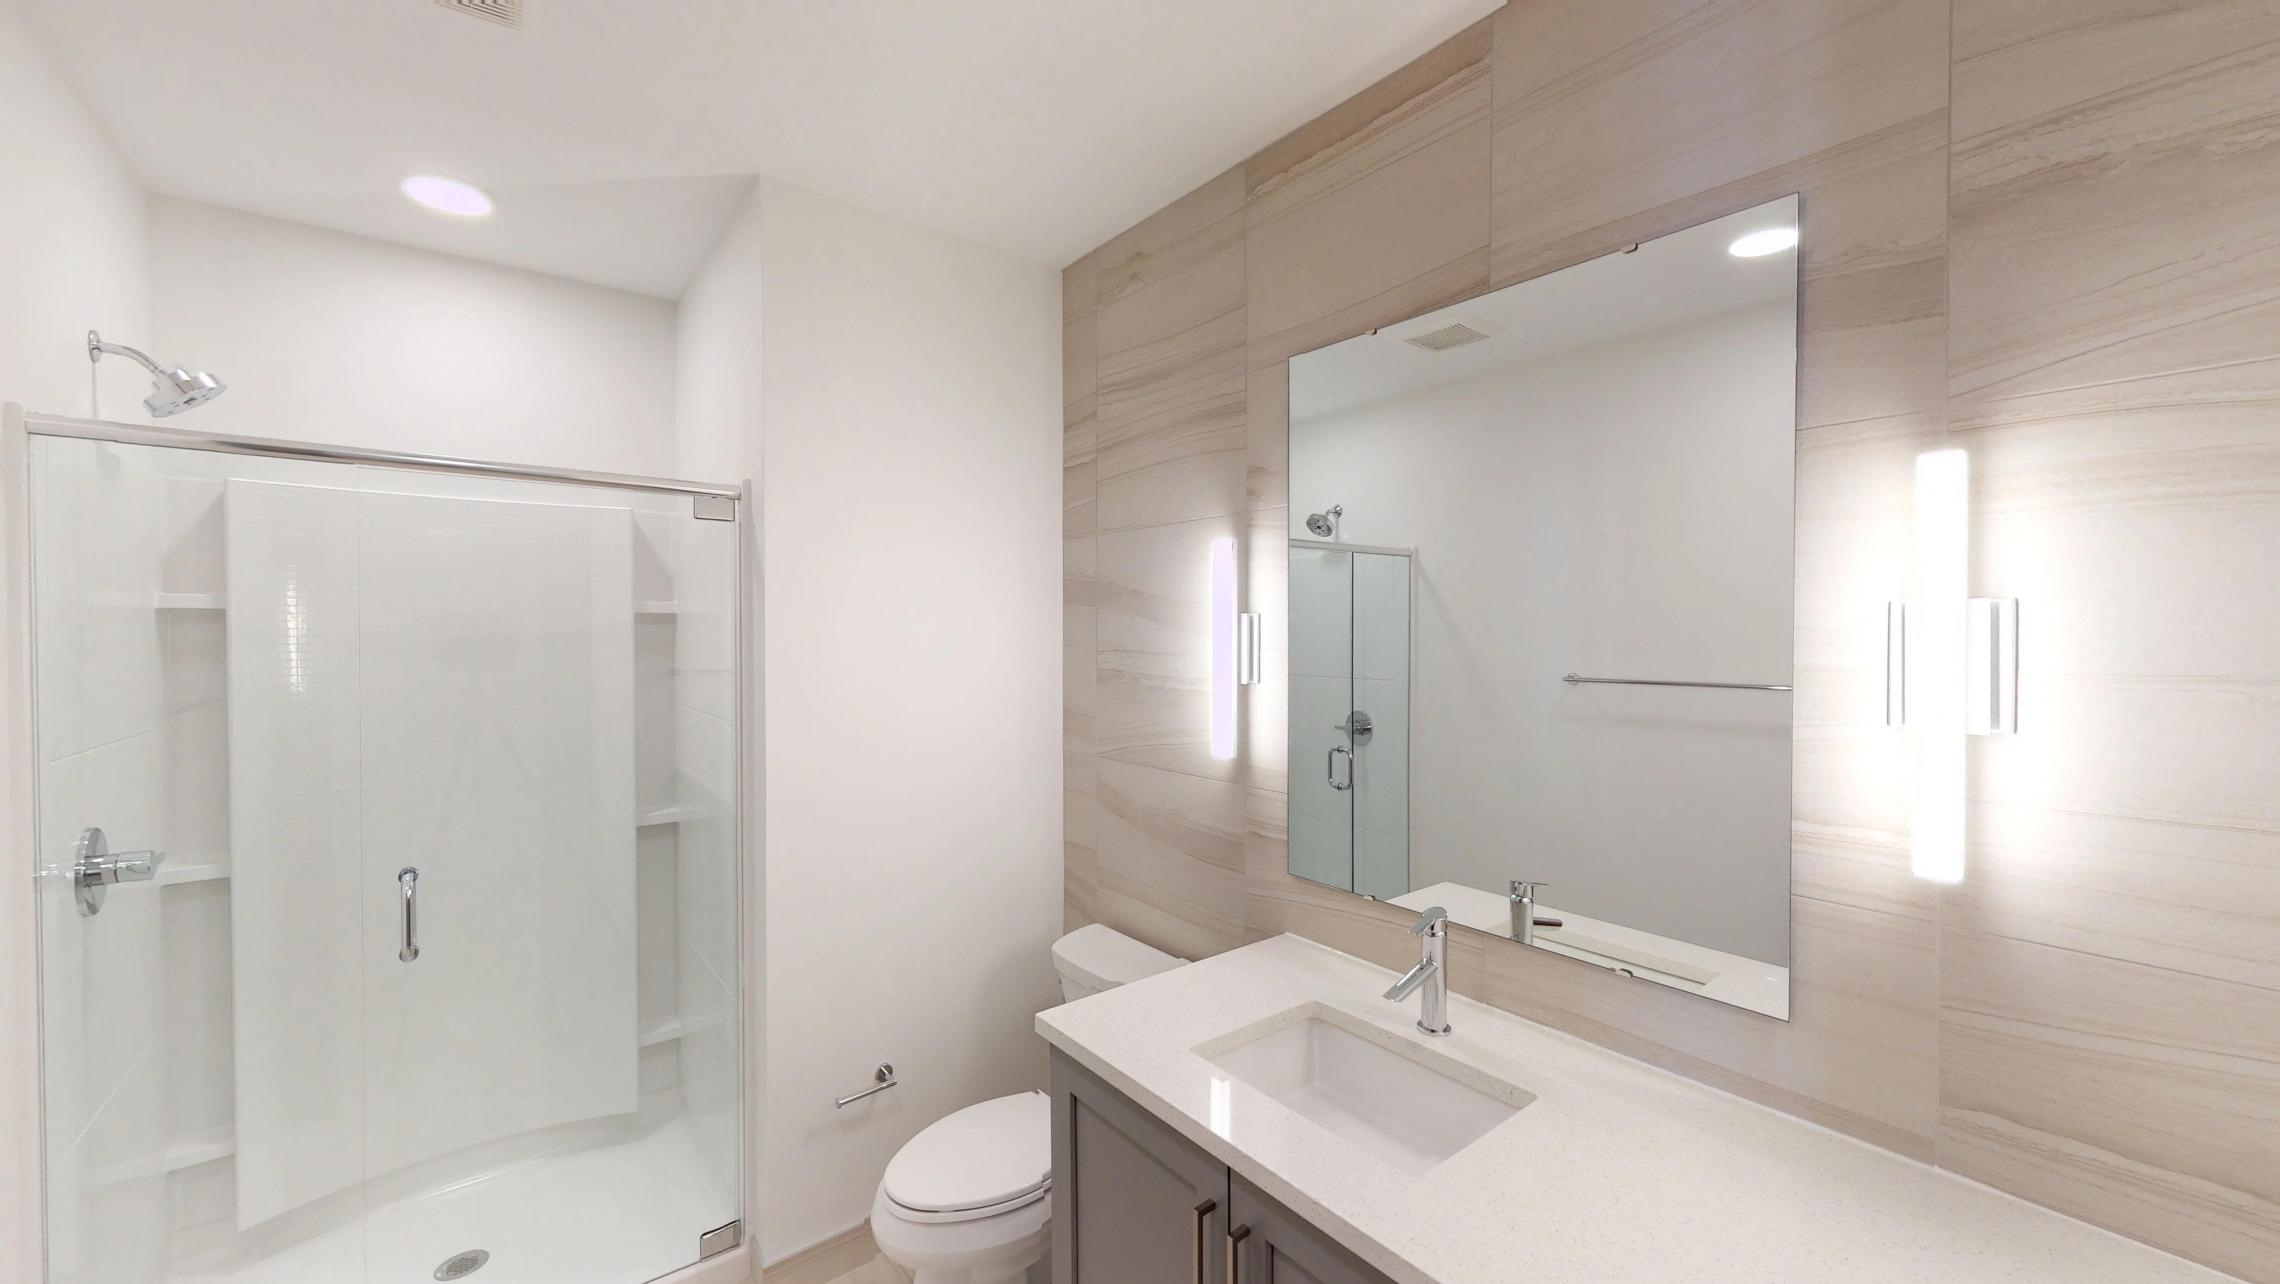 The-Pressman-Apartment-512-Two-Bedroom-Living-Room-View-Kitchen-Island-Downtown-Madison-Capitol-Balcony-Bathroom-Vanity